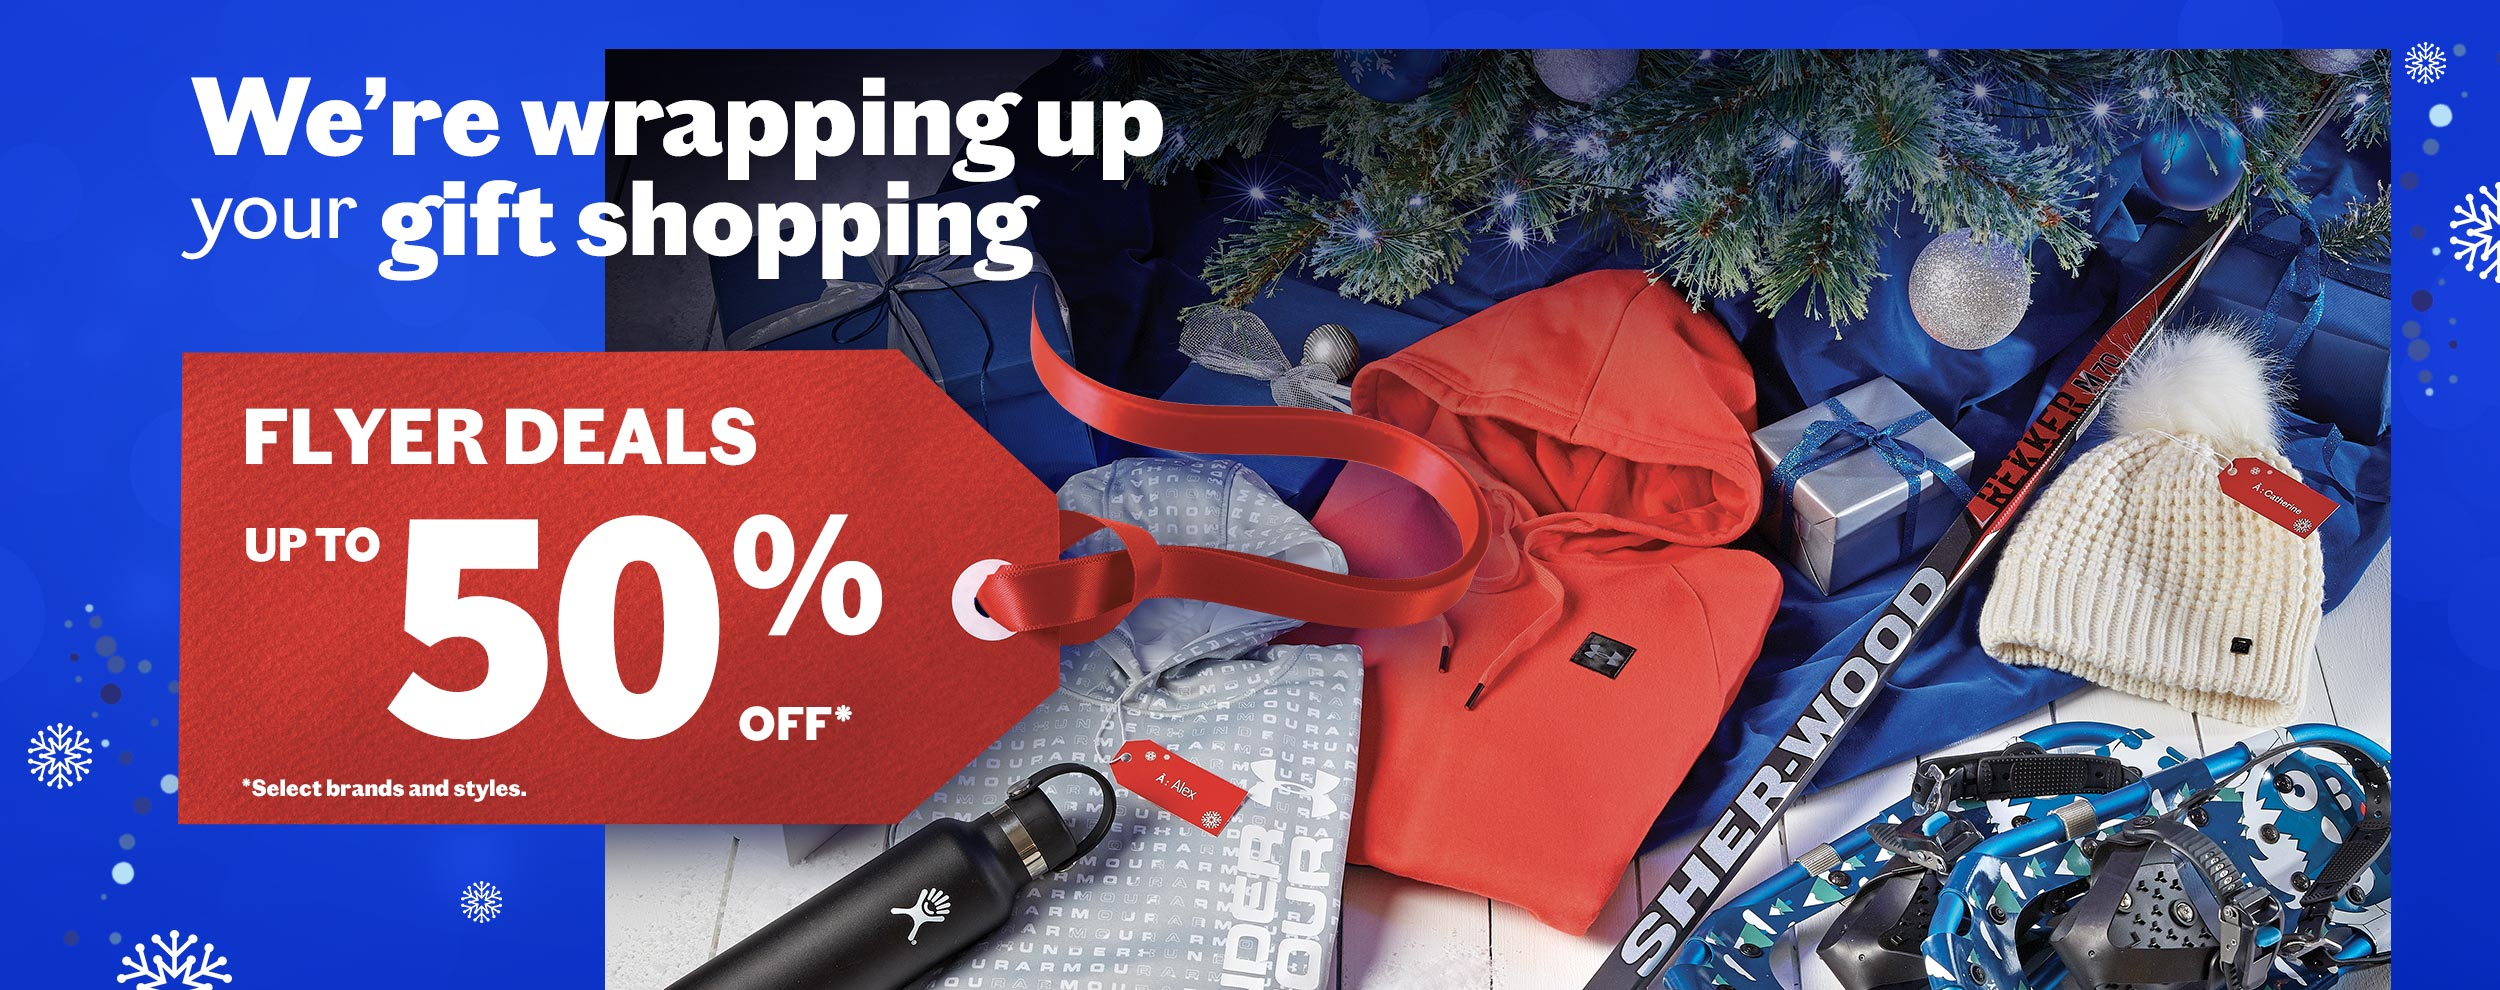 Were wrapping up your holiday shopping with flyer deals